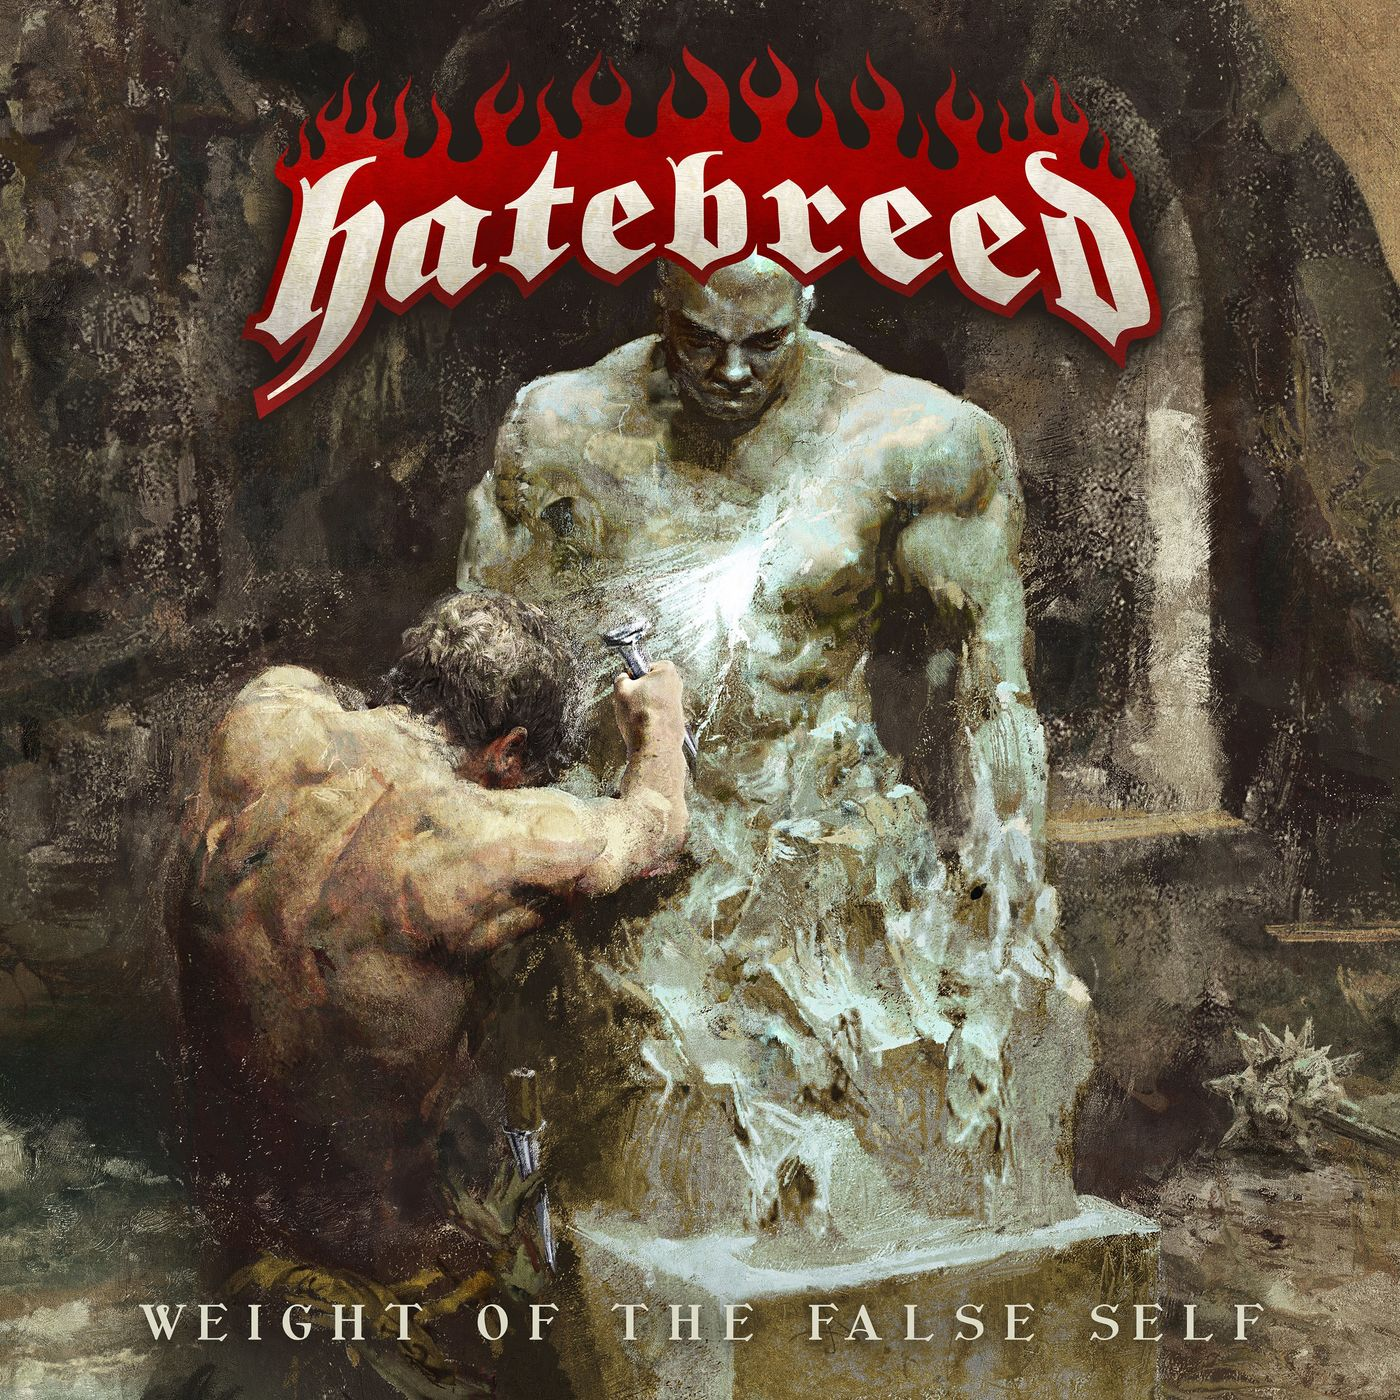 Hatebreed - Weight of the False Self [single] (2020)